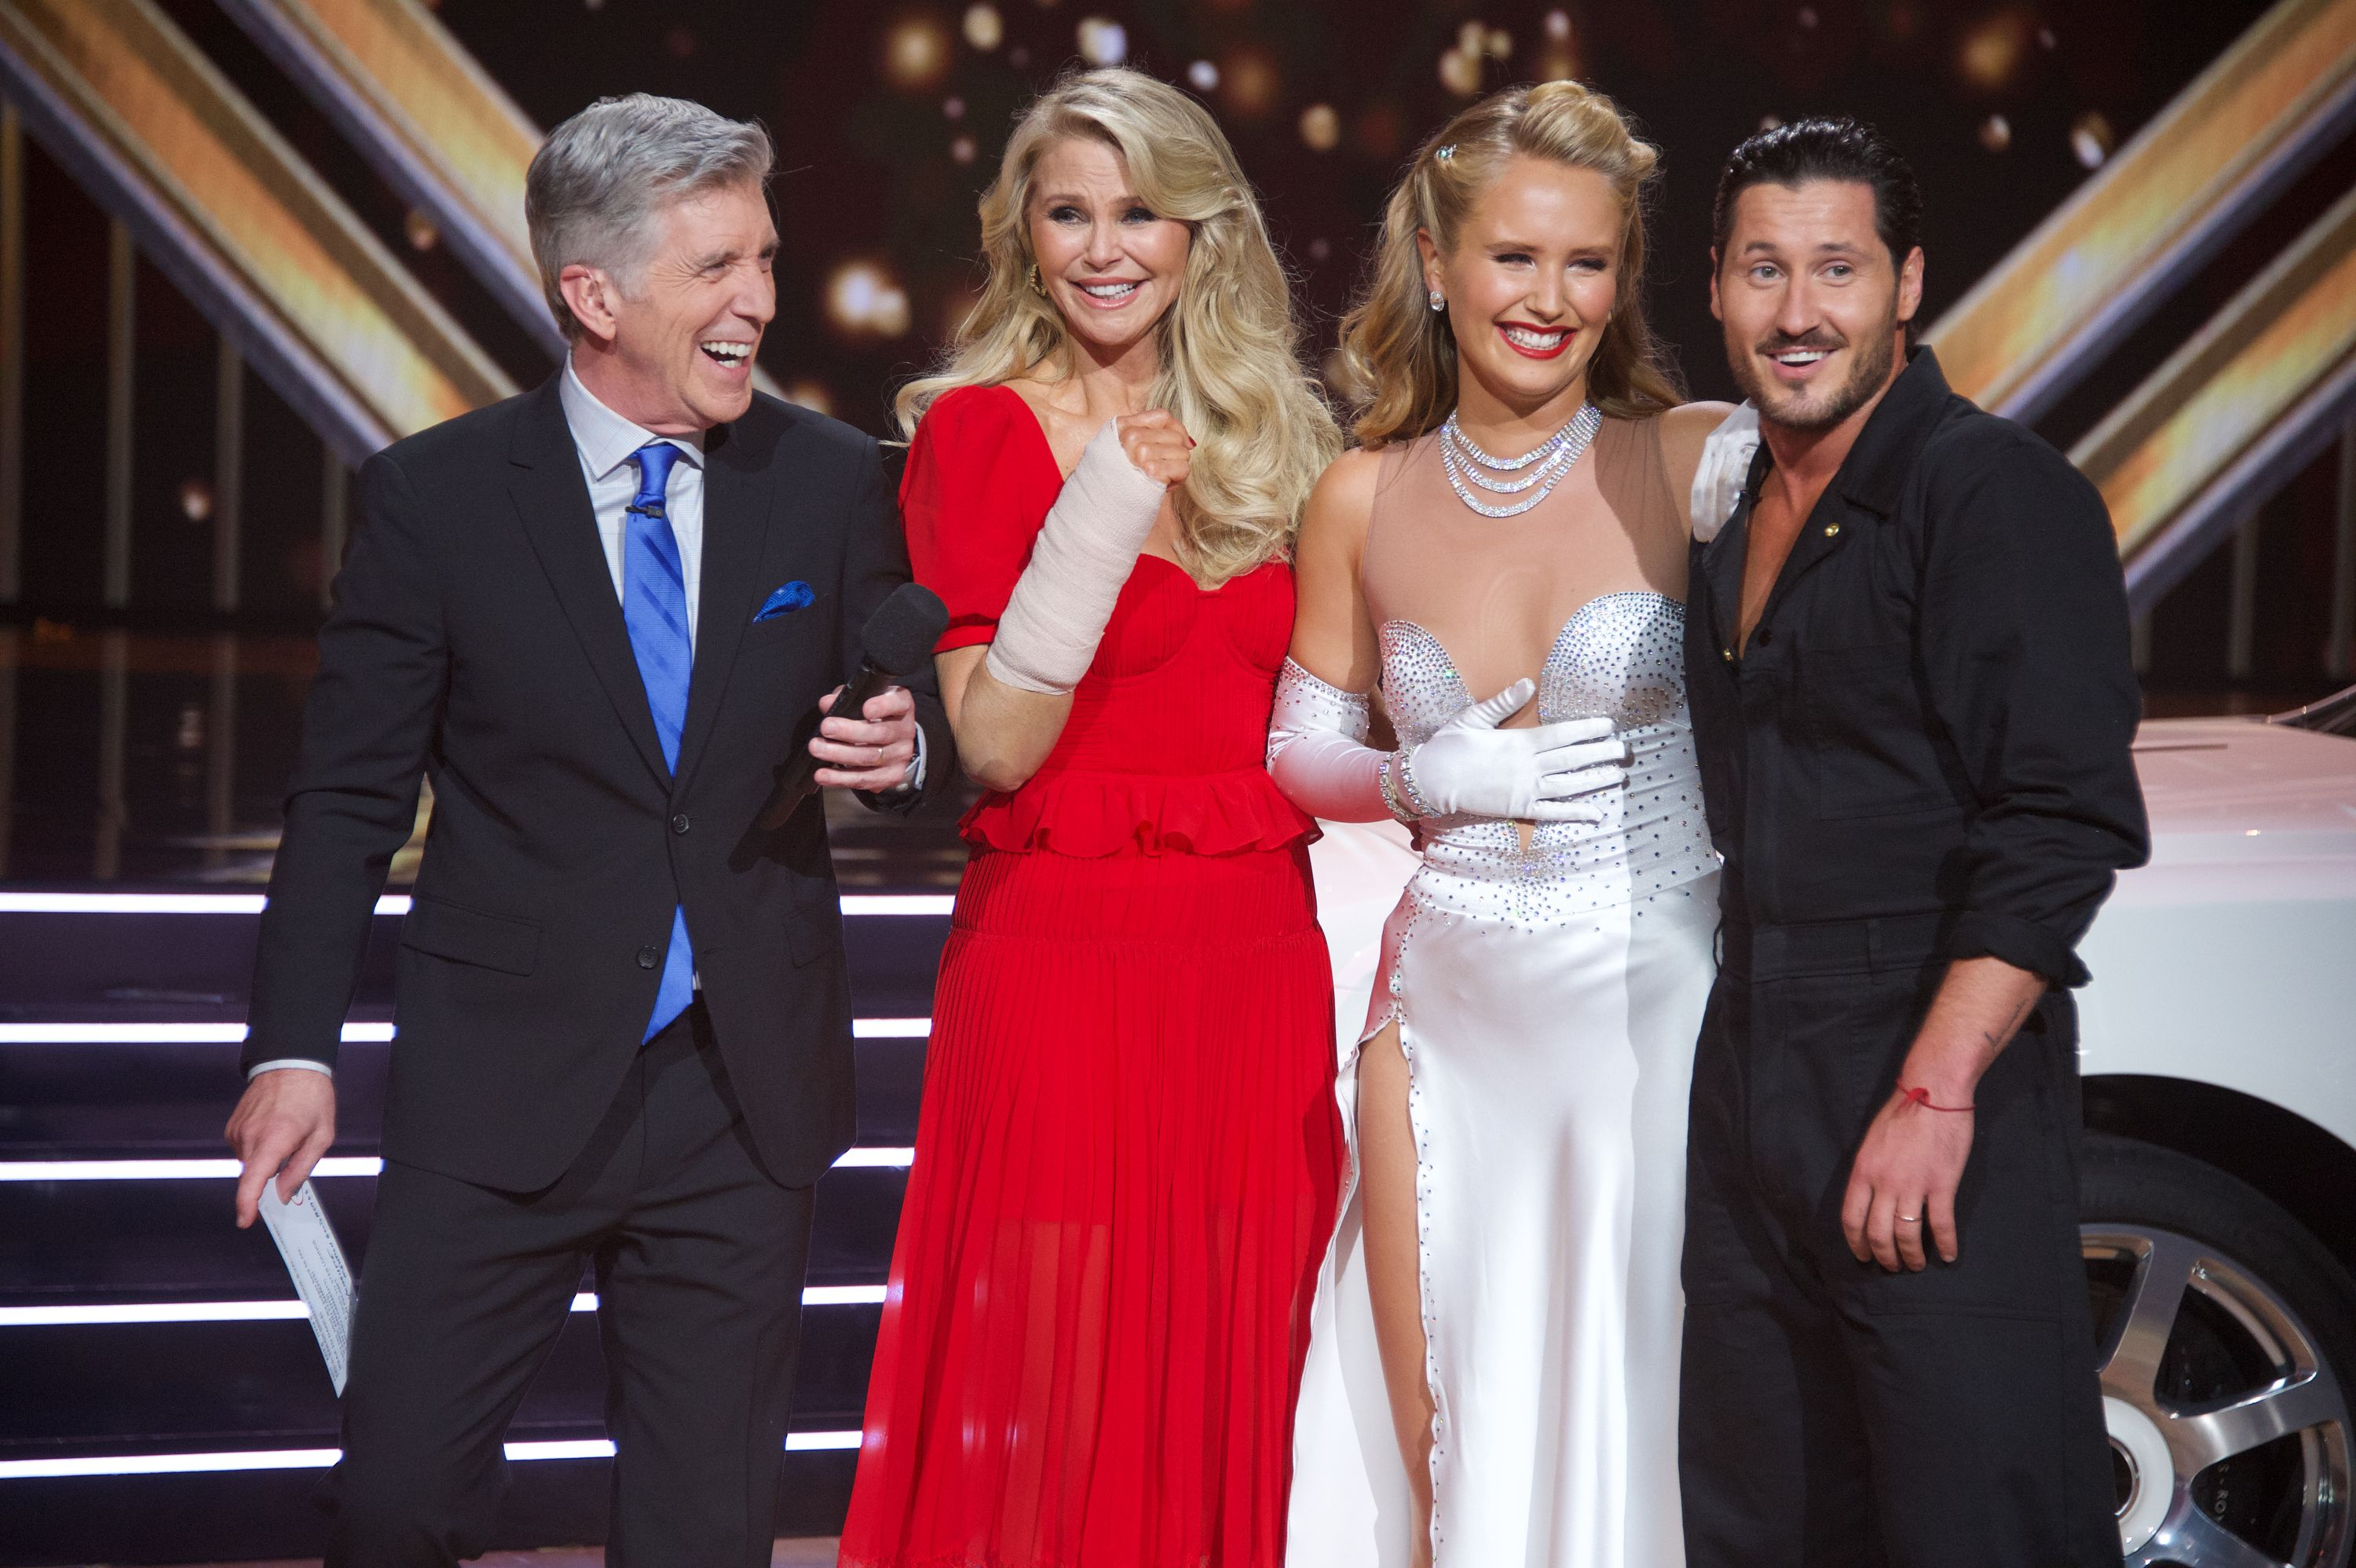 42 'Dancing With the Stars' Celebrities Who Suffered Injuries On The Show